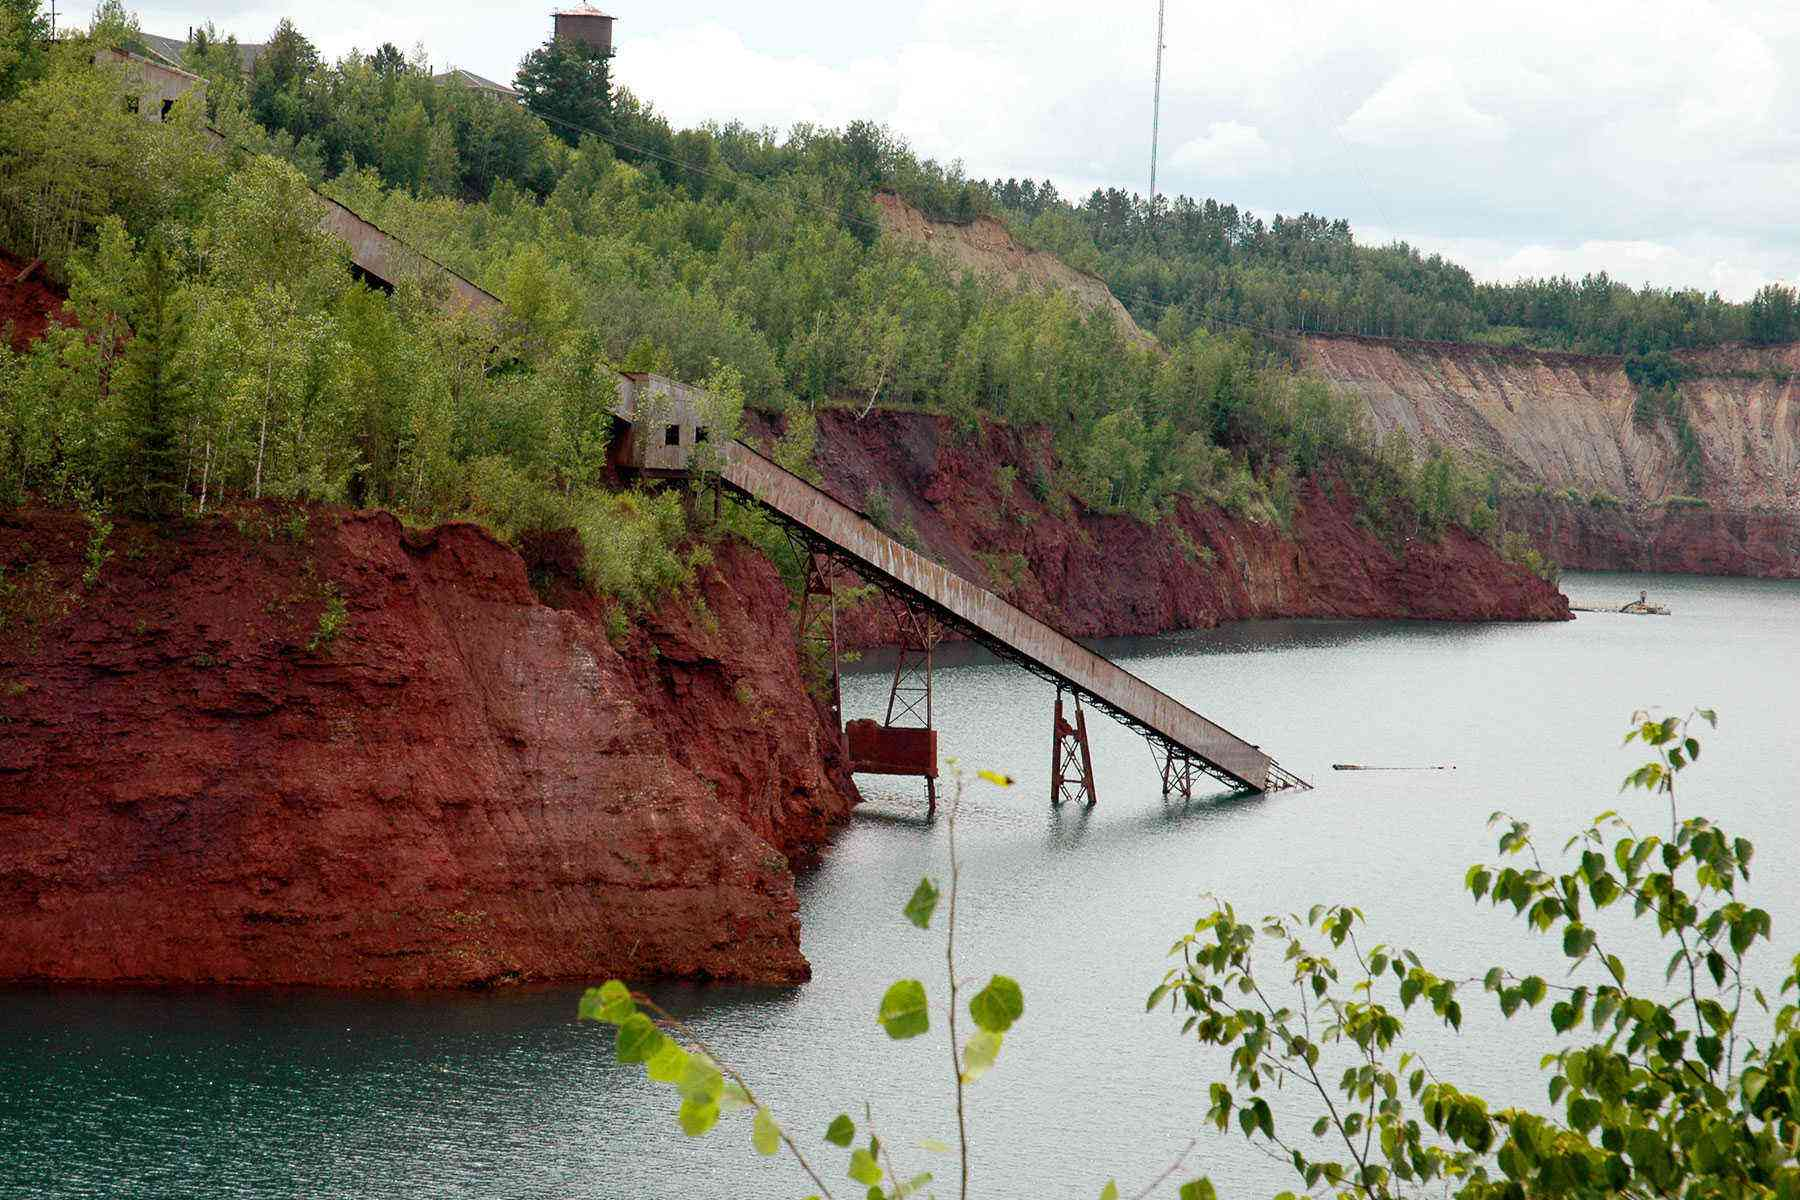 view of mine pit with water and conveyor system